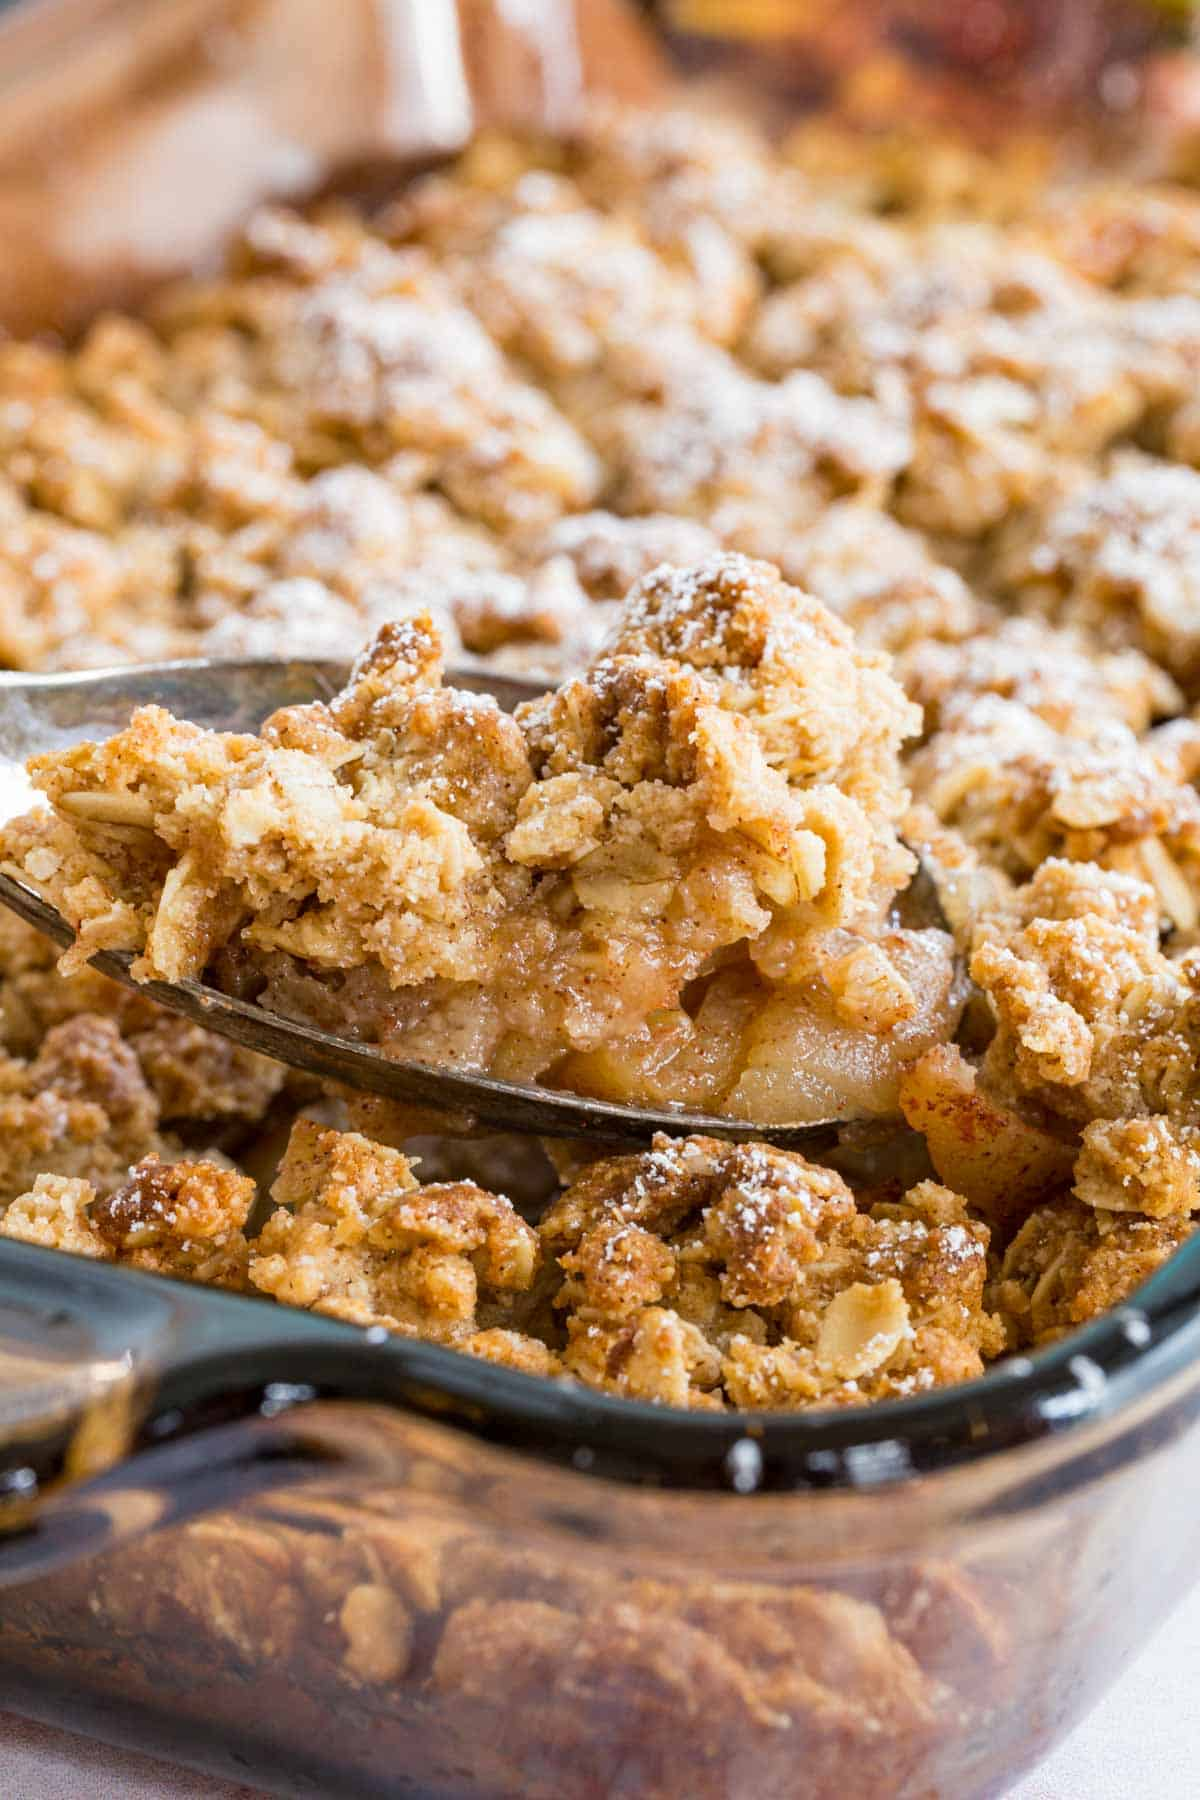 serving spoon scooping up gluten free apple crisp out of a baking dish